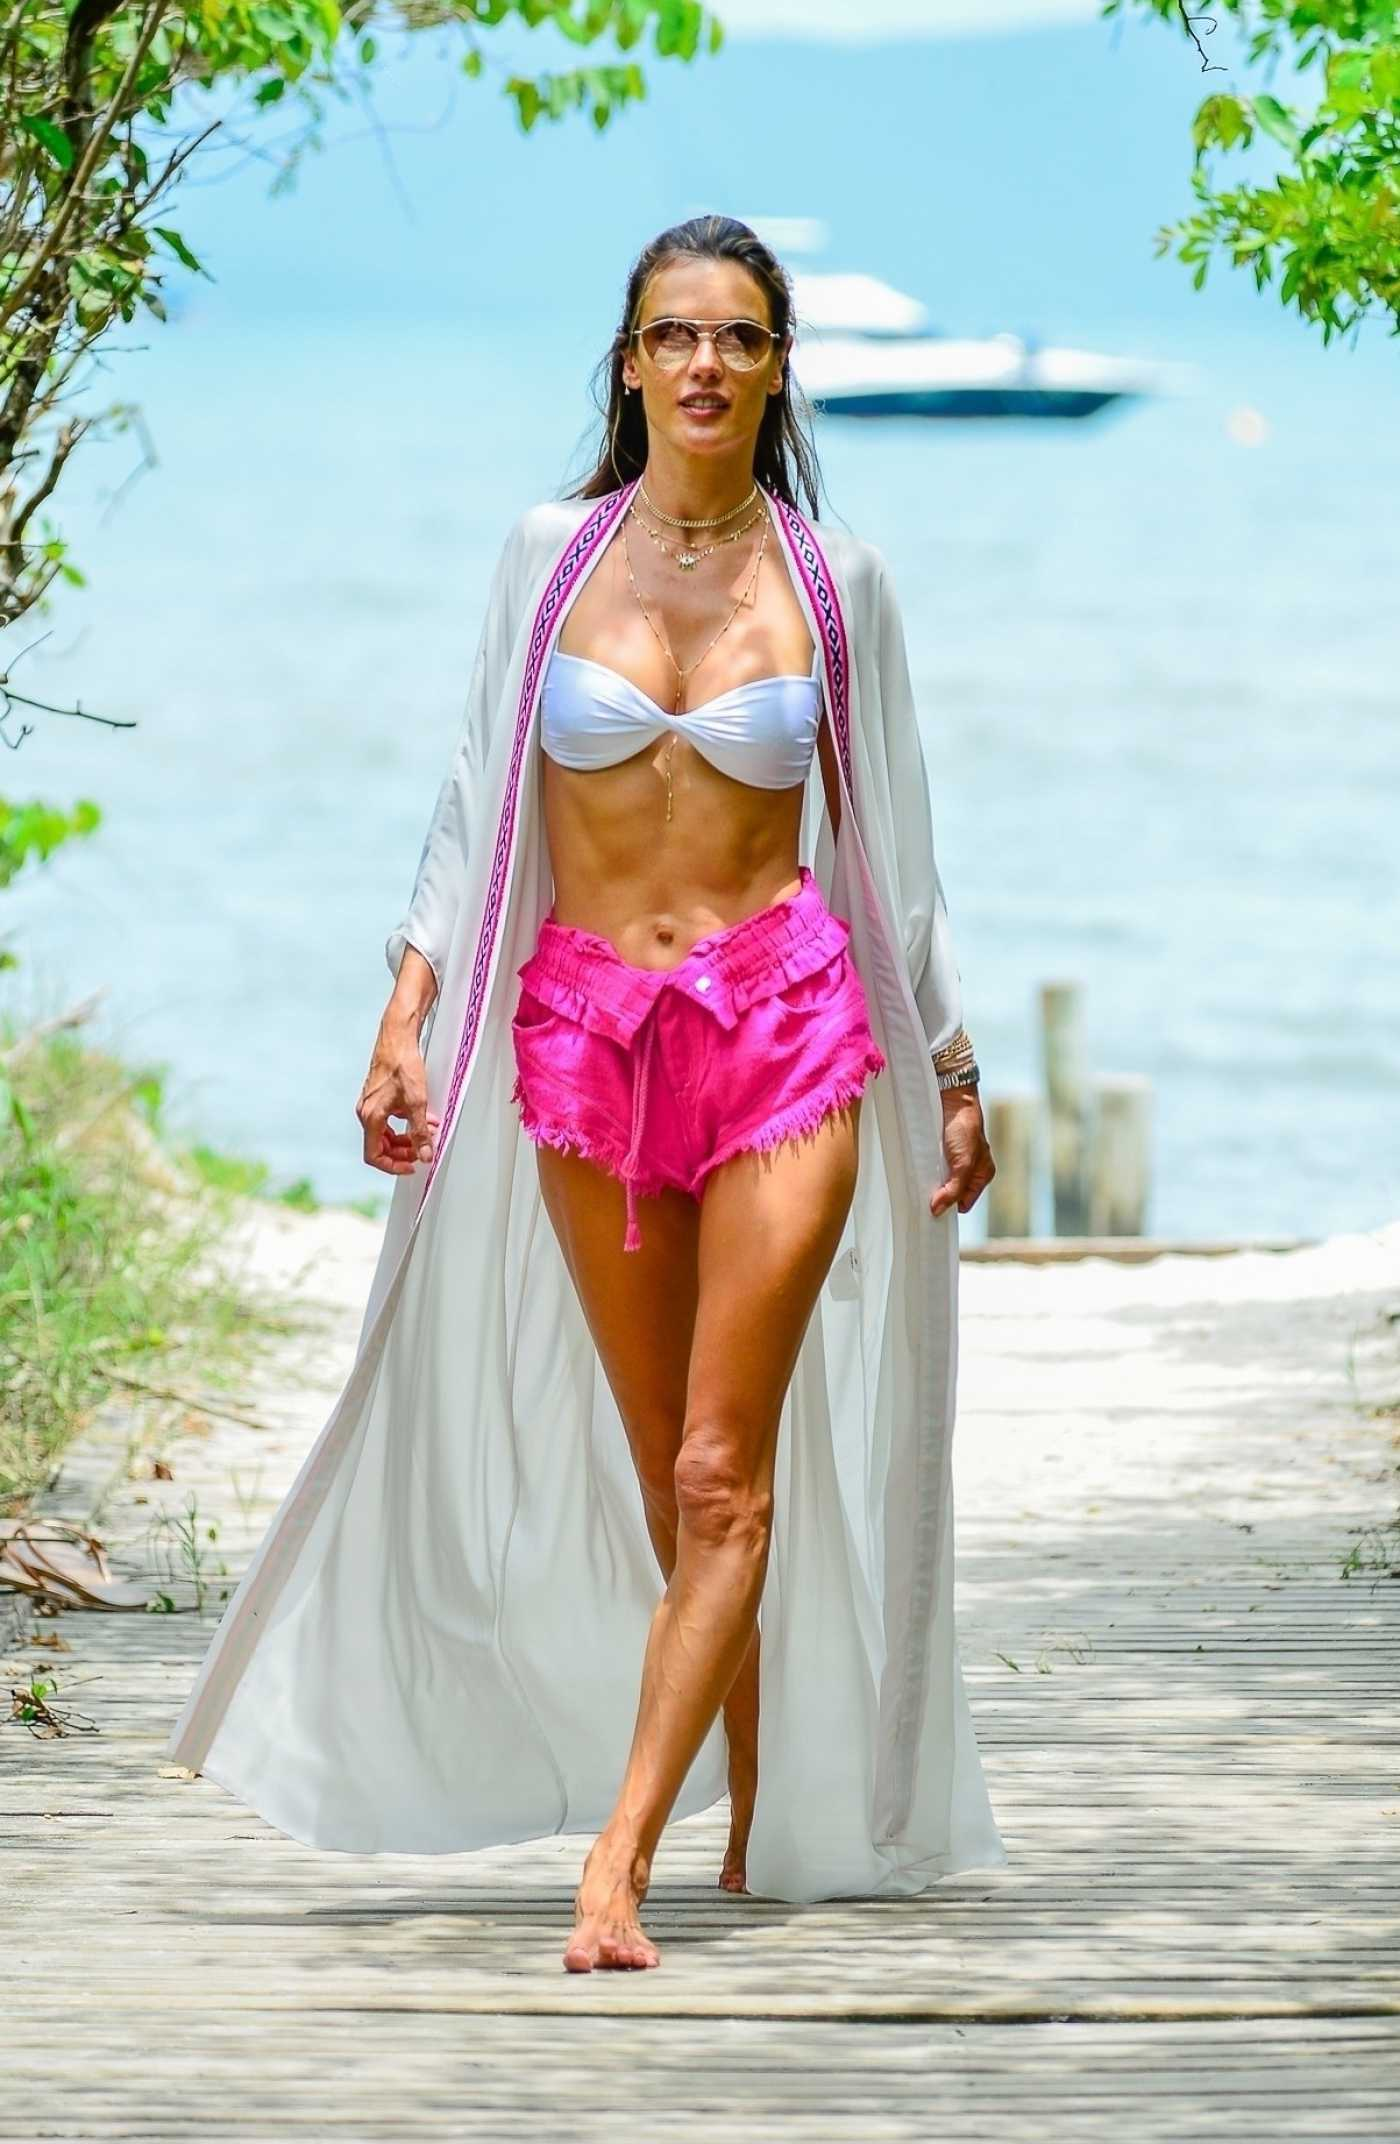 Alessandra Ambrosio in a White Bra Was Seen Out in Florianopolis 01/05/2021